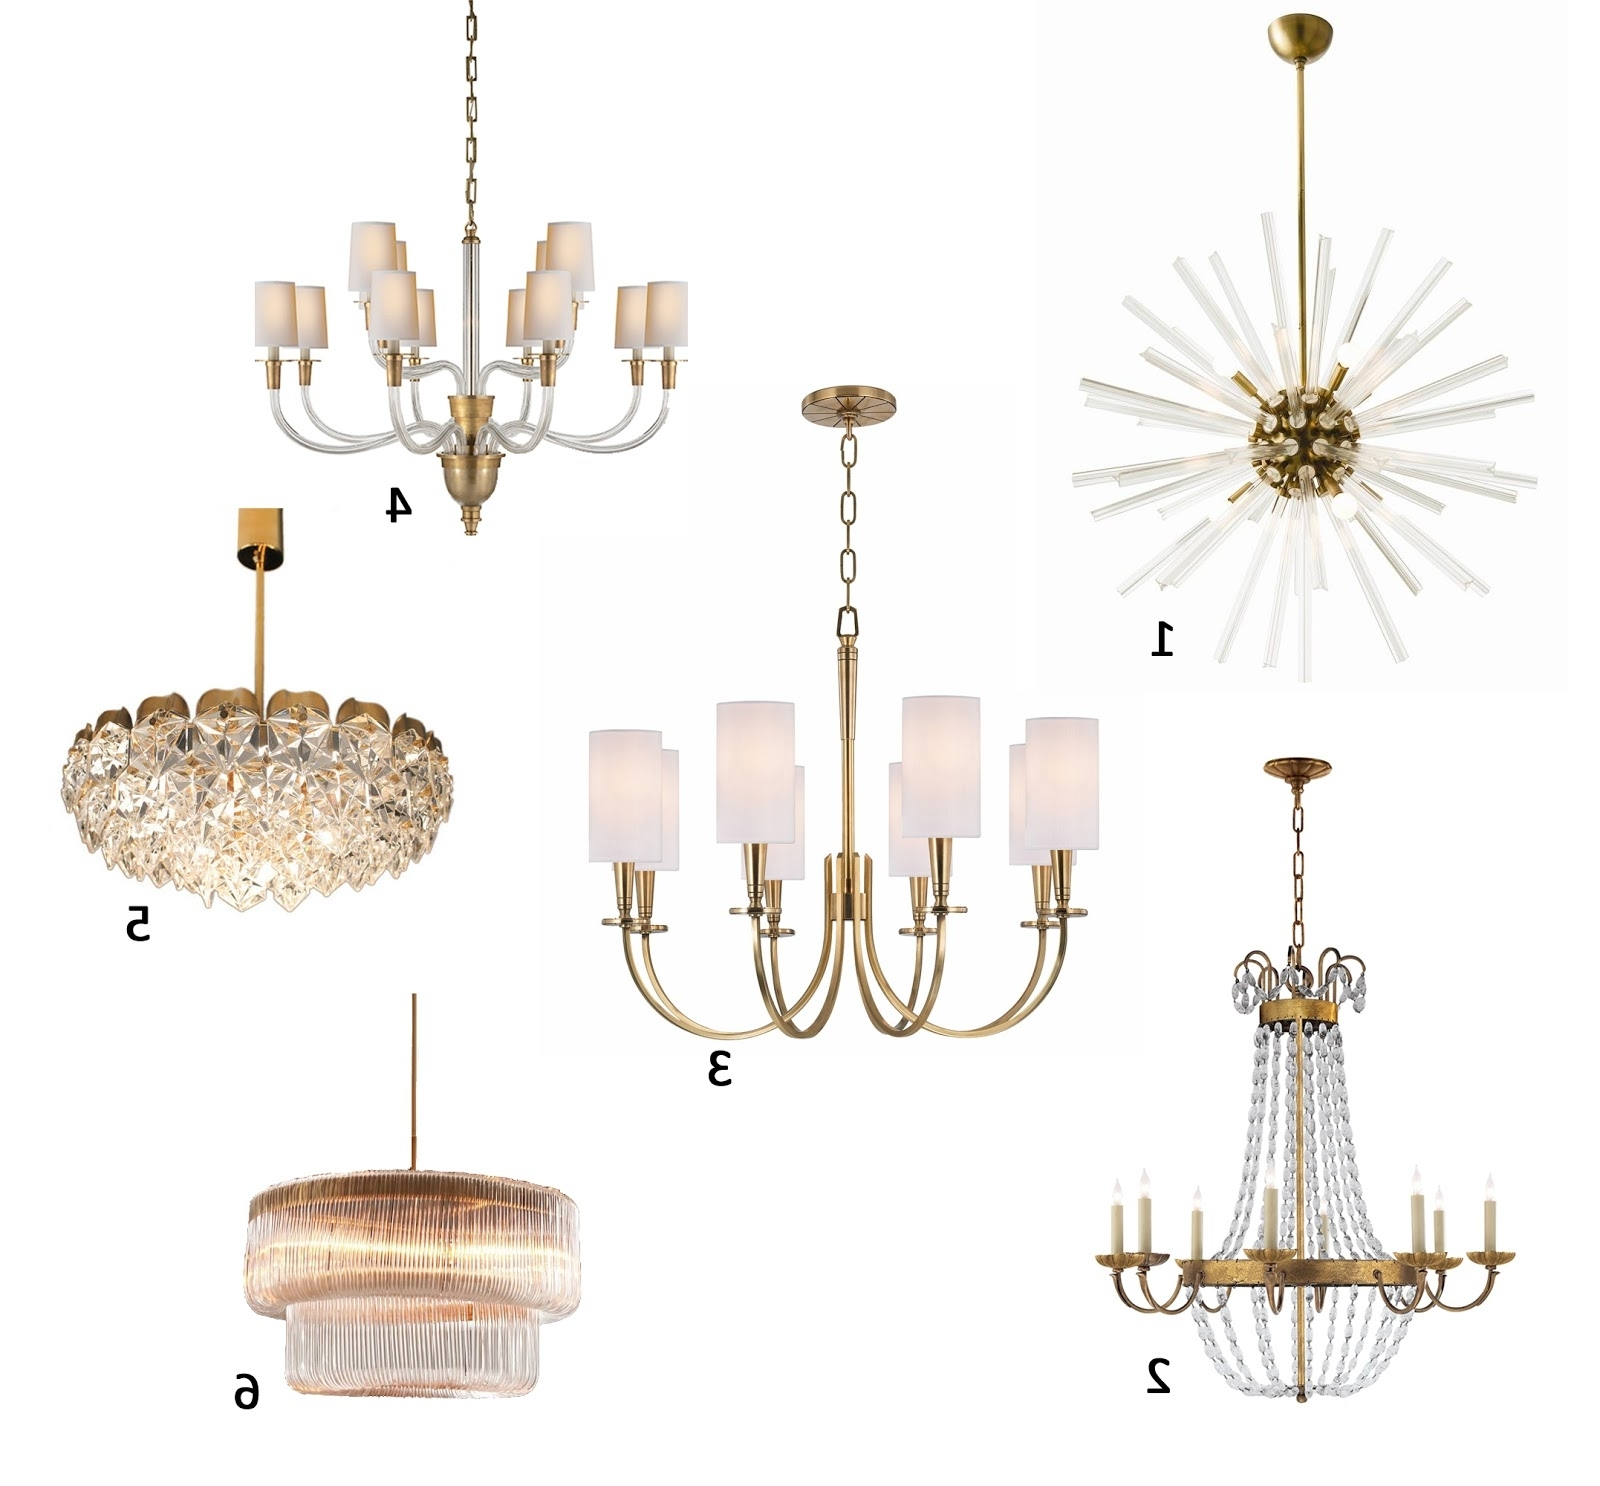 Recent Brass Chandeliers Regarding Am Dolce Vita: A Roundup Of My Favourite Brass Chandeliers (View 13 of 15)